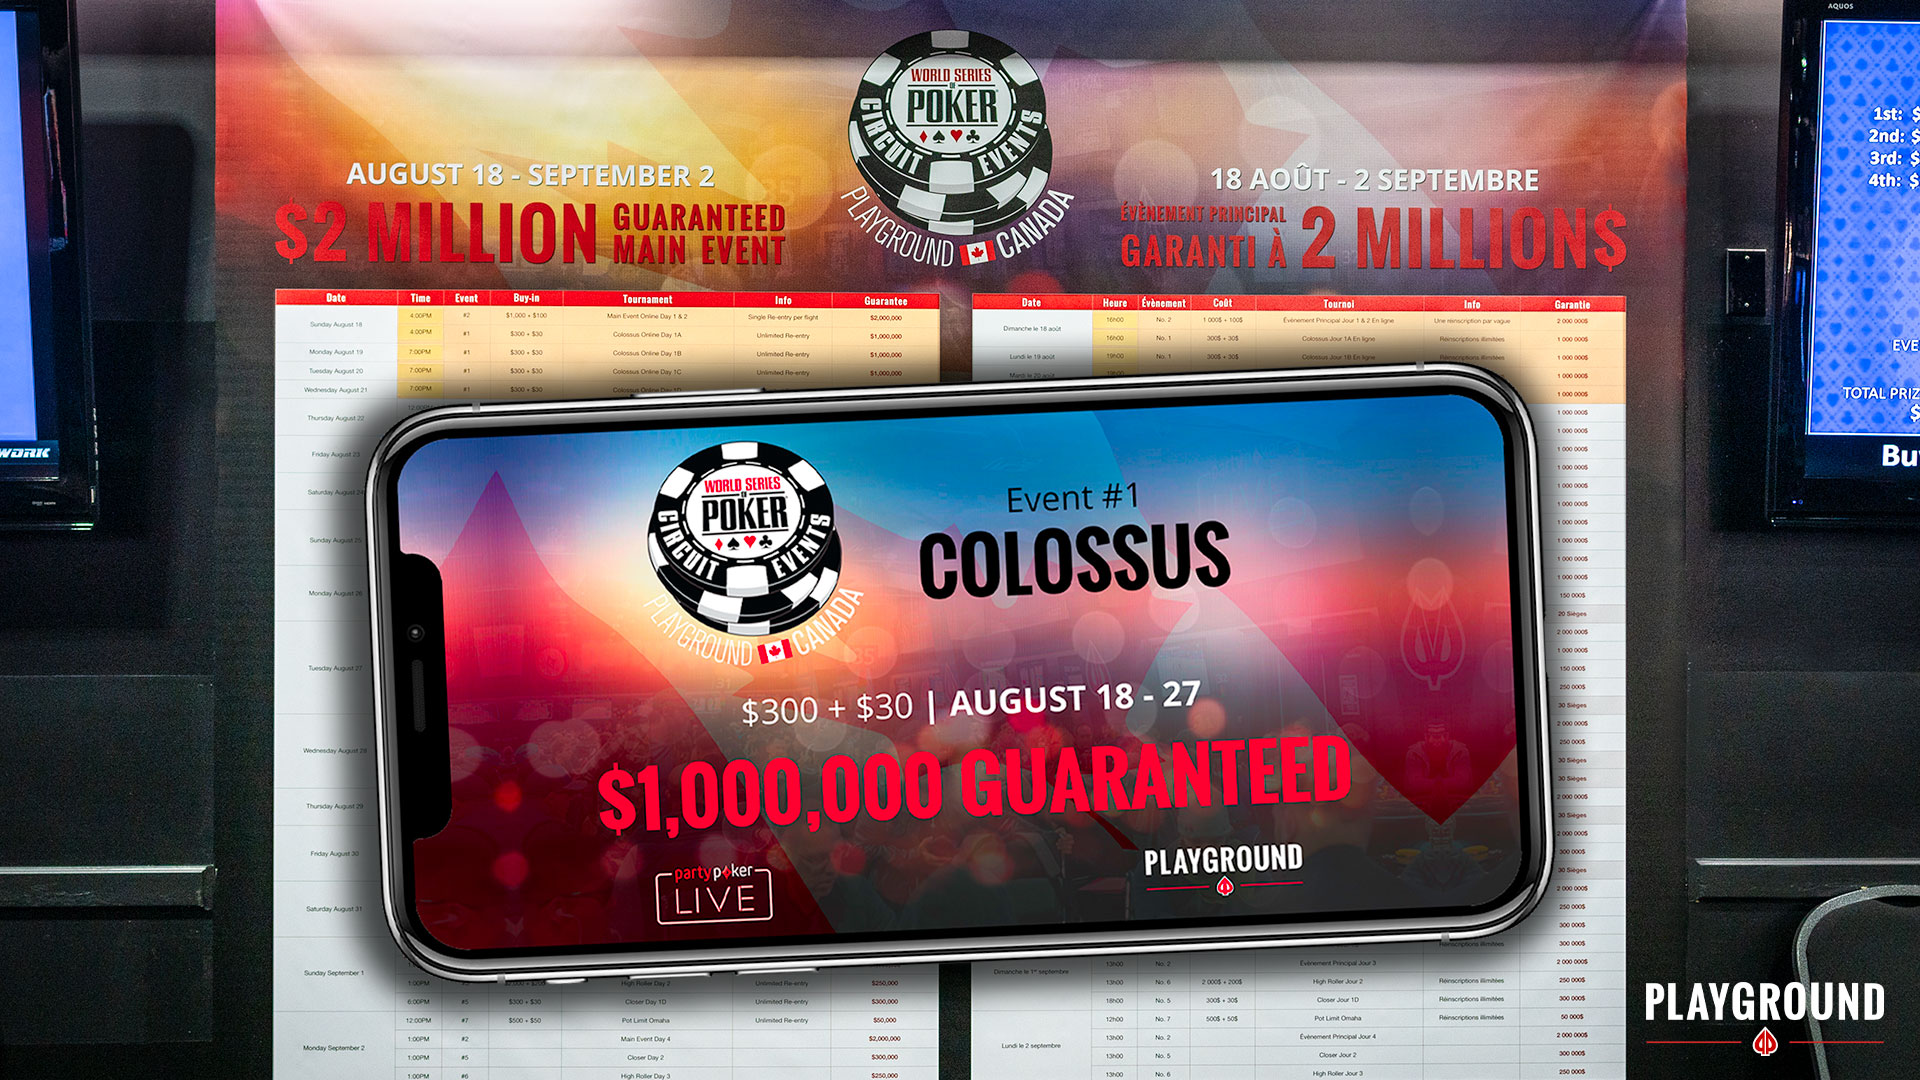 The Colossus starts on partypoker!